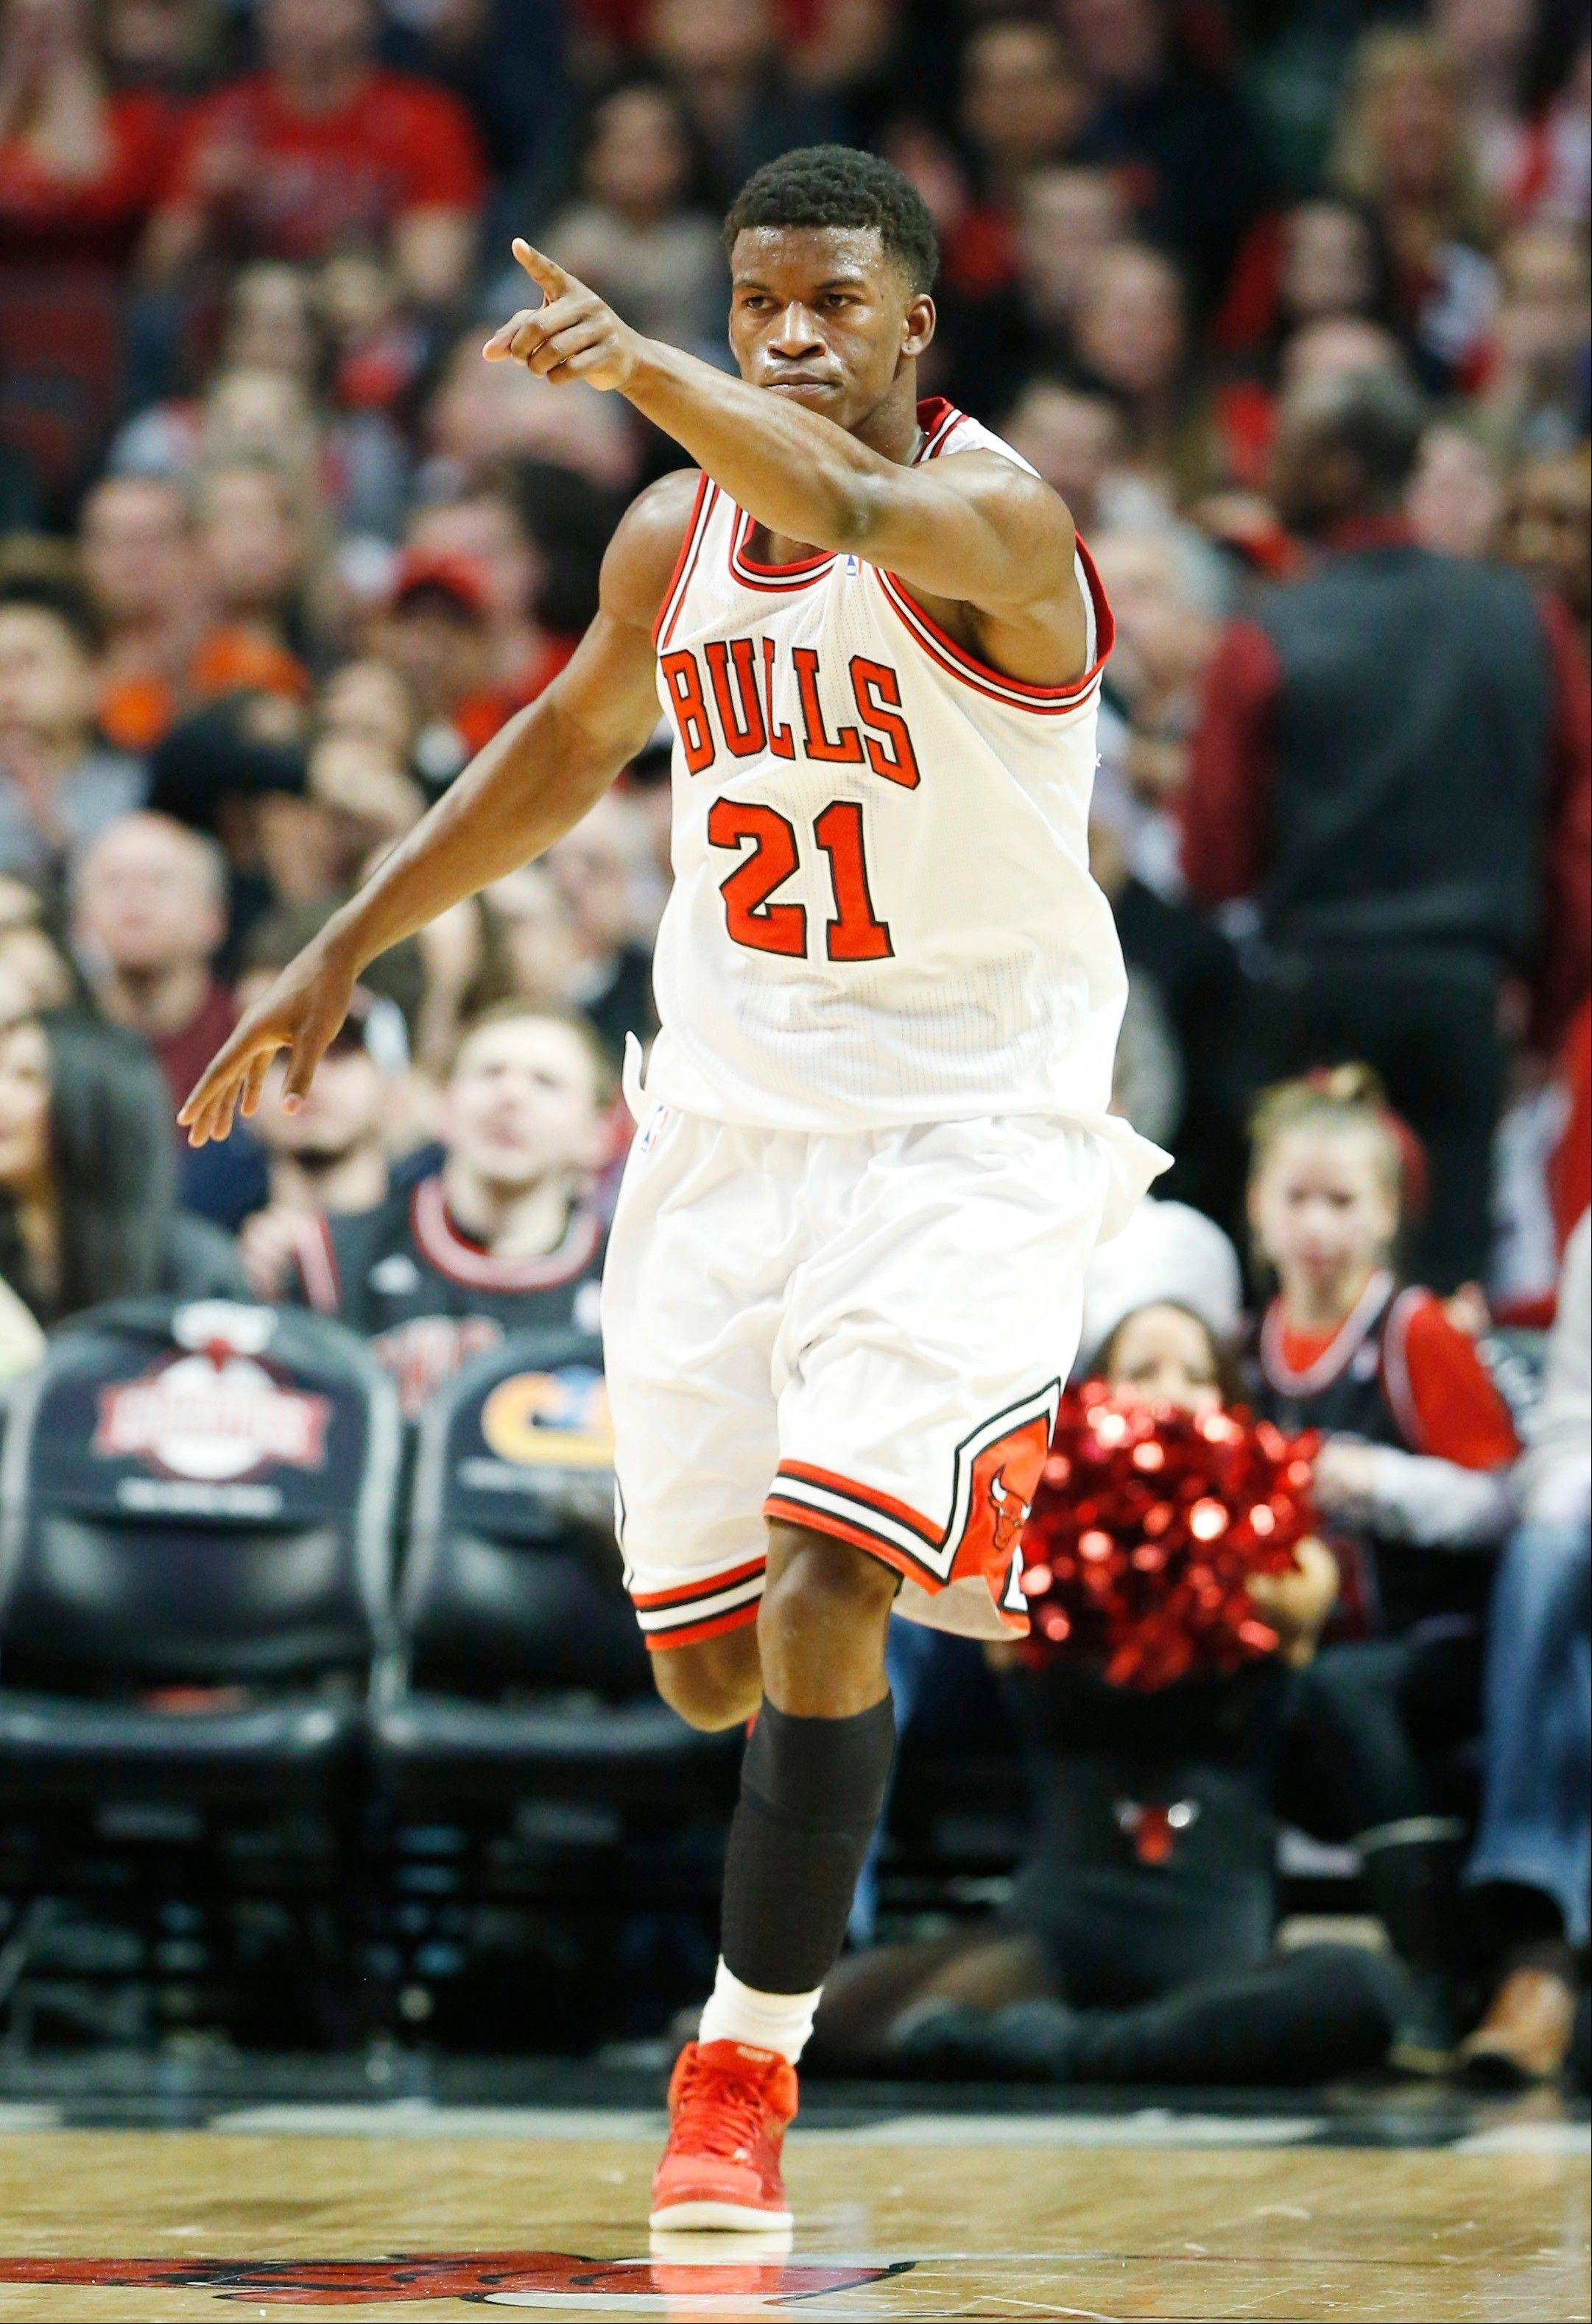 Jimmy Butler points as he celebrates after scoring a basket during the first half of an NBA basketball game against the Golden State Warriors in Chicago on Friday, Jan. 25, 2013. The Bulls won 103-87.